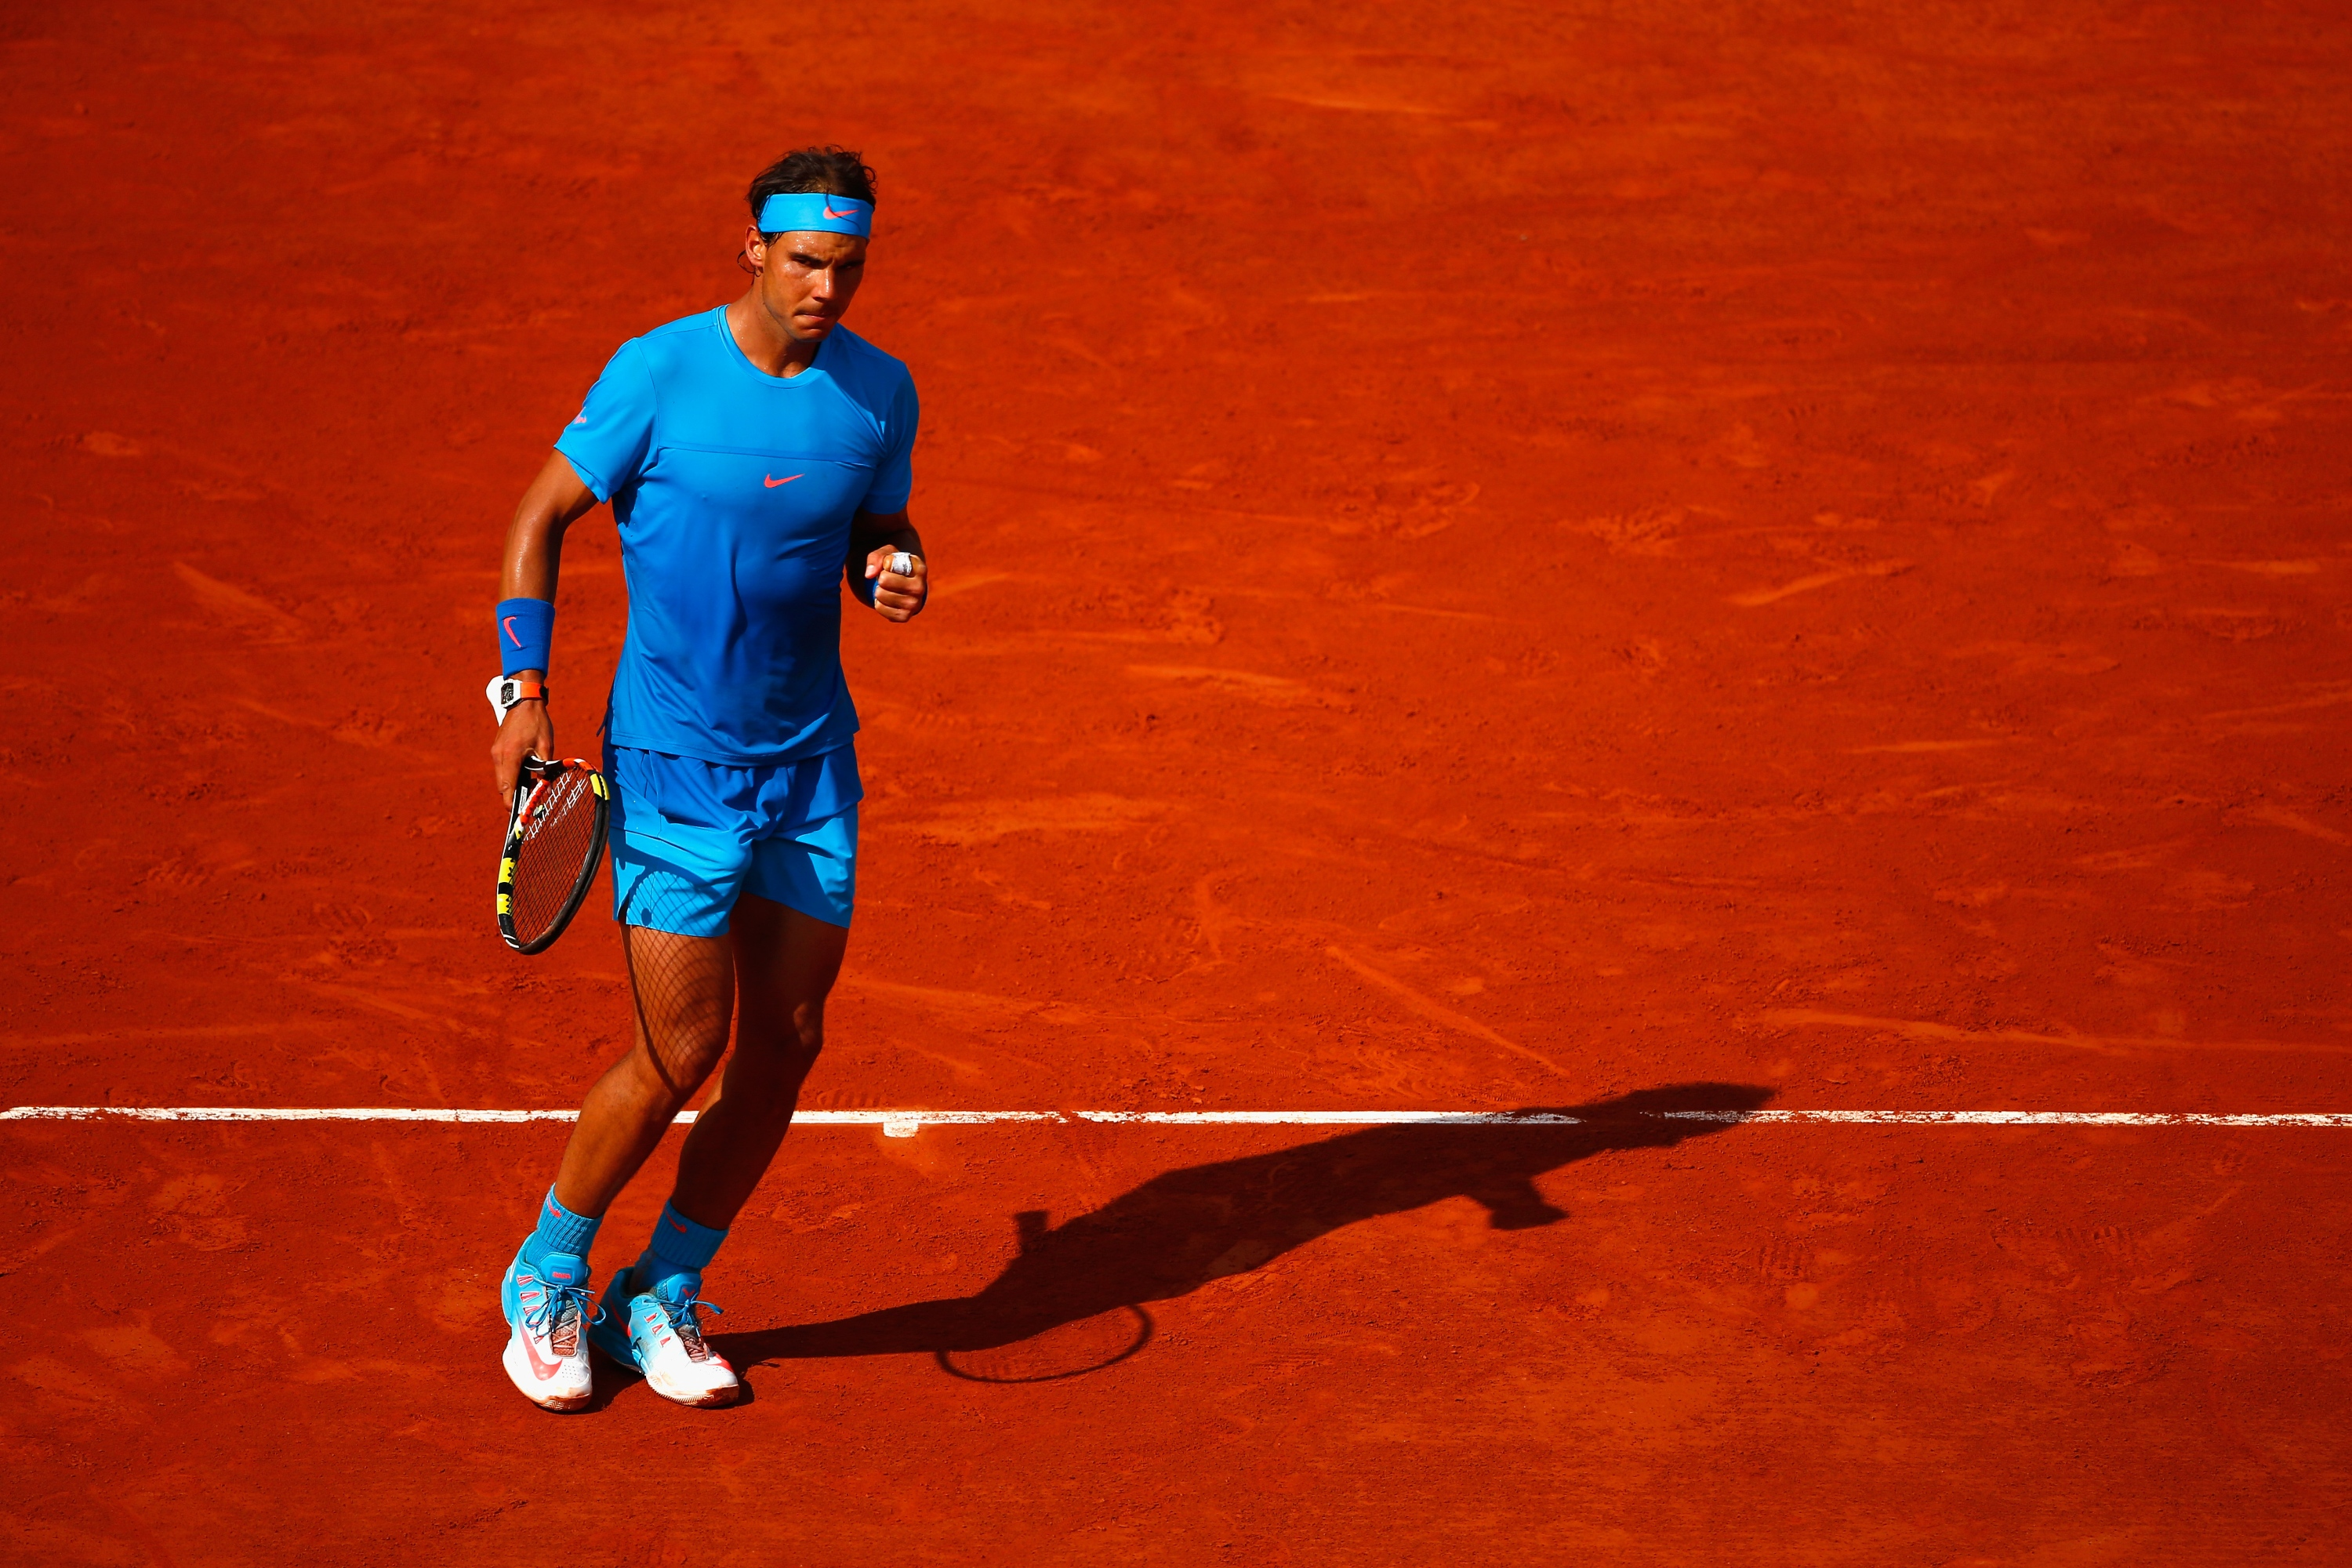 rafael nadal beats jack sock to reach french open quarter finals rafael nadal fans. Black Bedroom Furniture Sets. Home Design Ideas